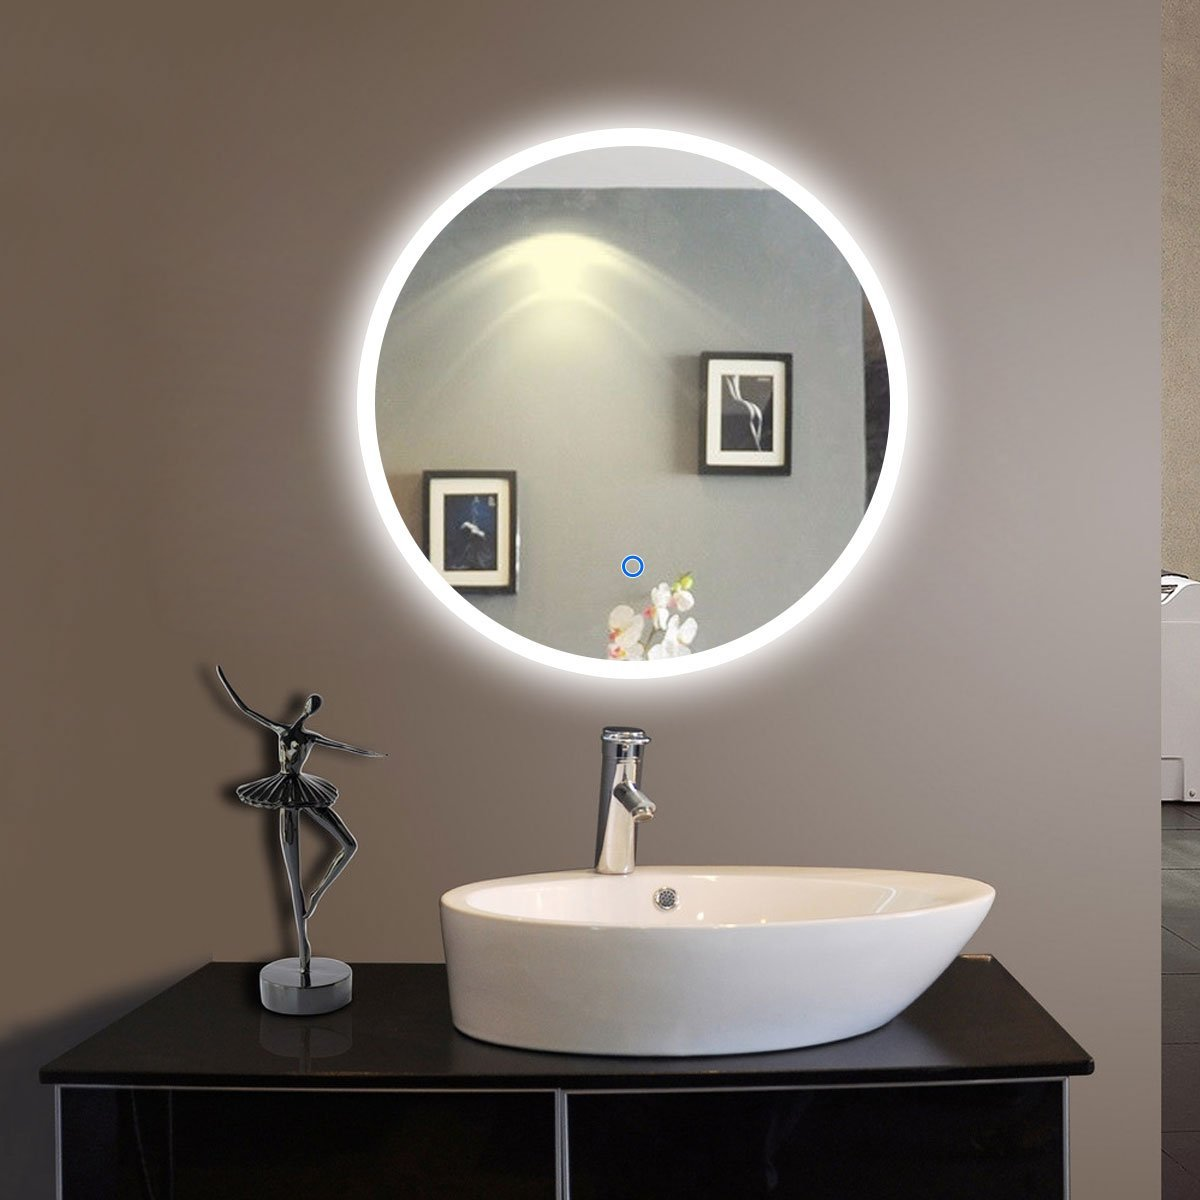 24 in. 24 in Round LED Bathroom Silvered Mirror/Touch Button(D-CL065-1)